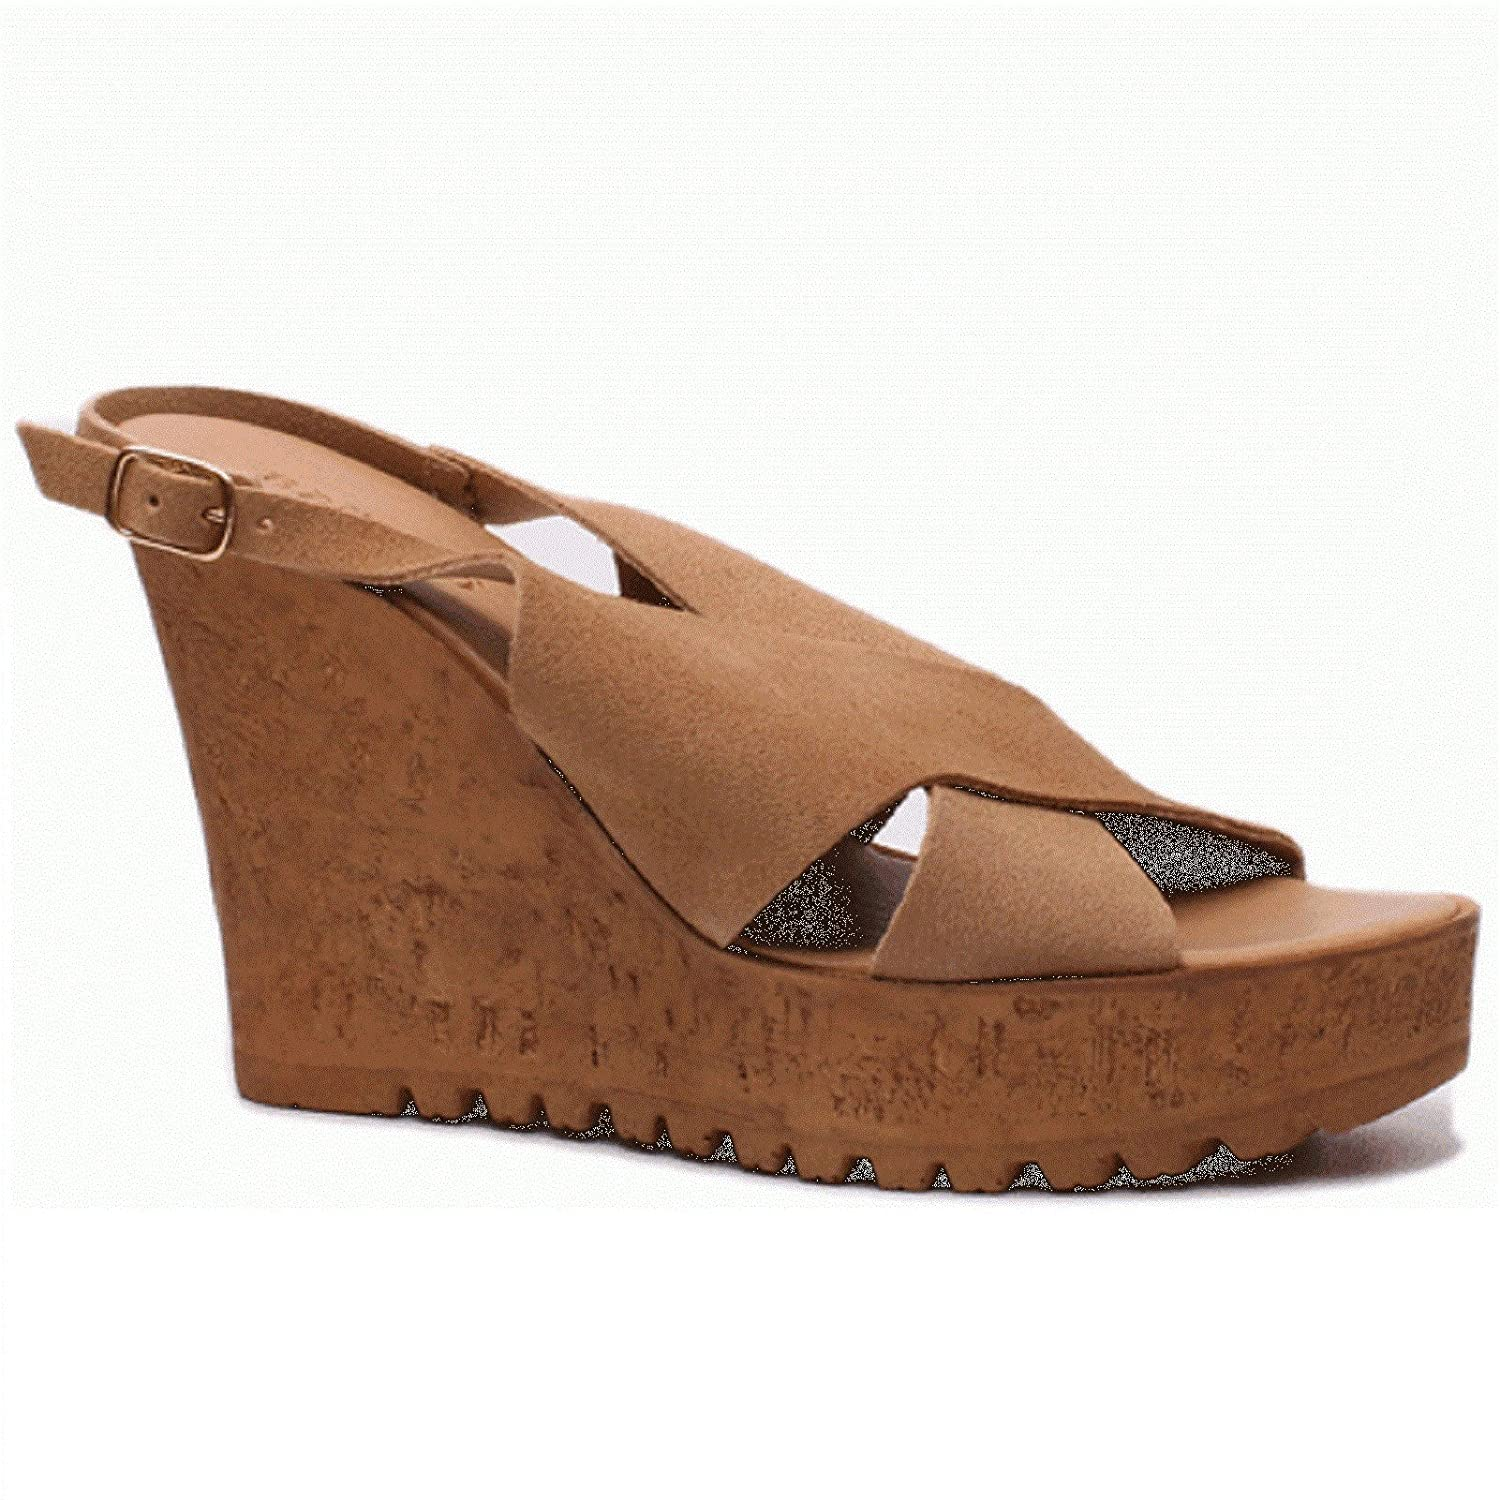 Bamboo NORRA-05S Nude Suede B075ZX366V 7.5 B(M) US